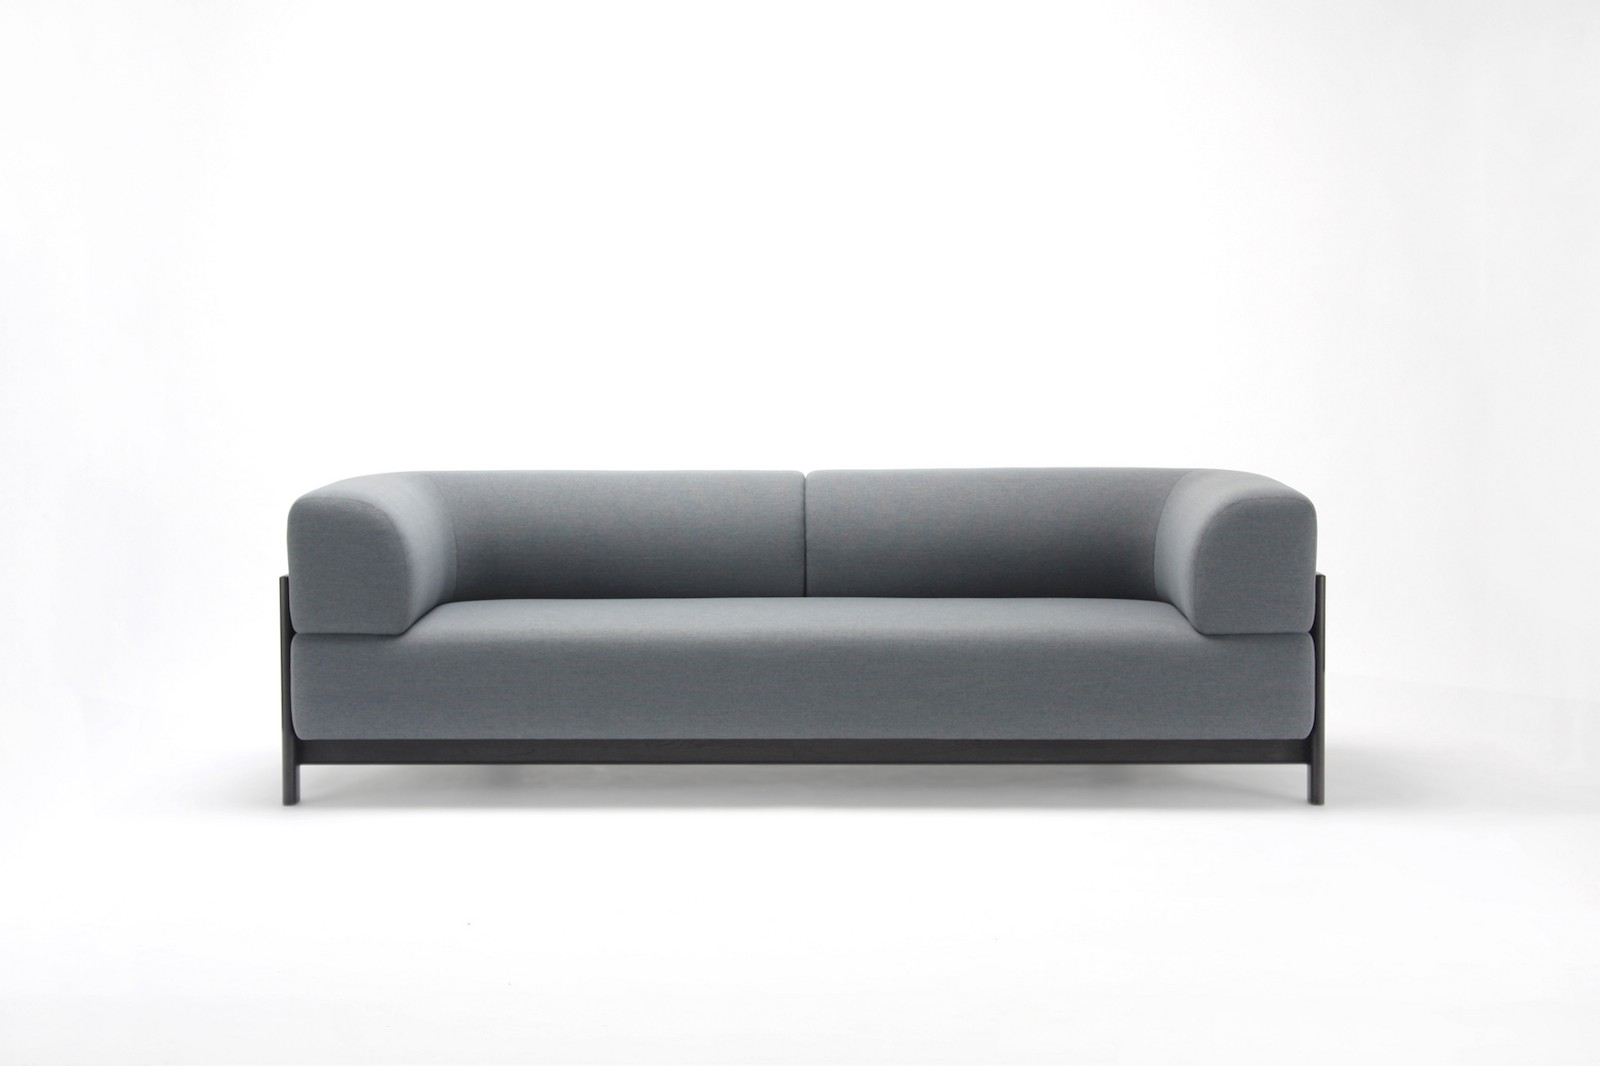 Elephant Sofa Is A Minimalist Sofa Created By Portugal Based Designer  Christian Haas For Karimoku New Standard. Elephant Is A Compelling, ...